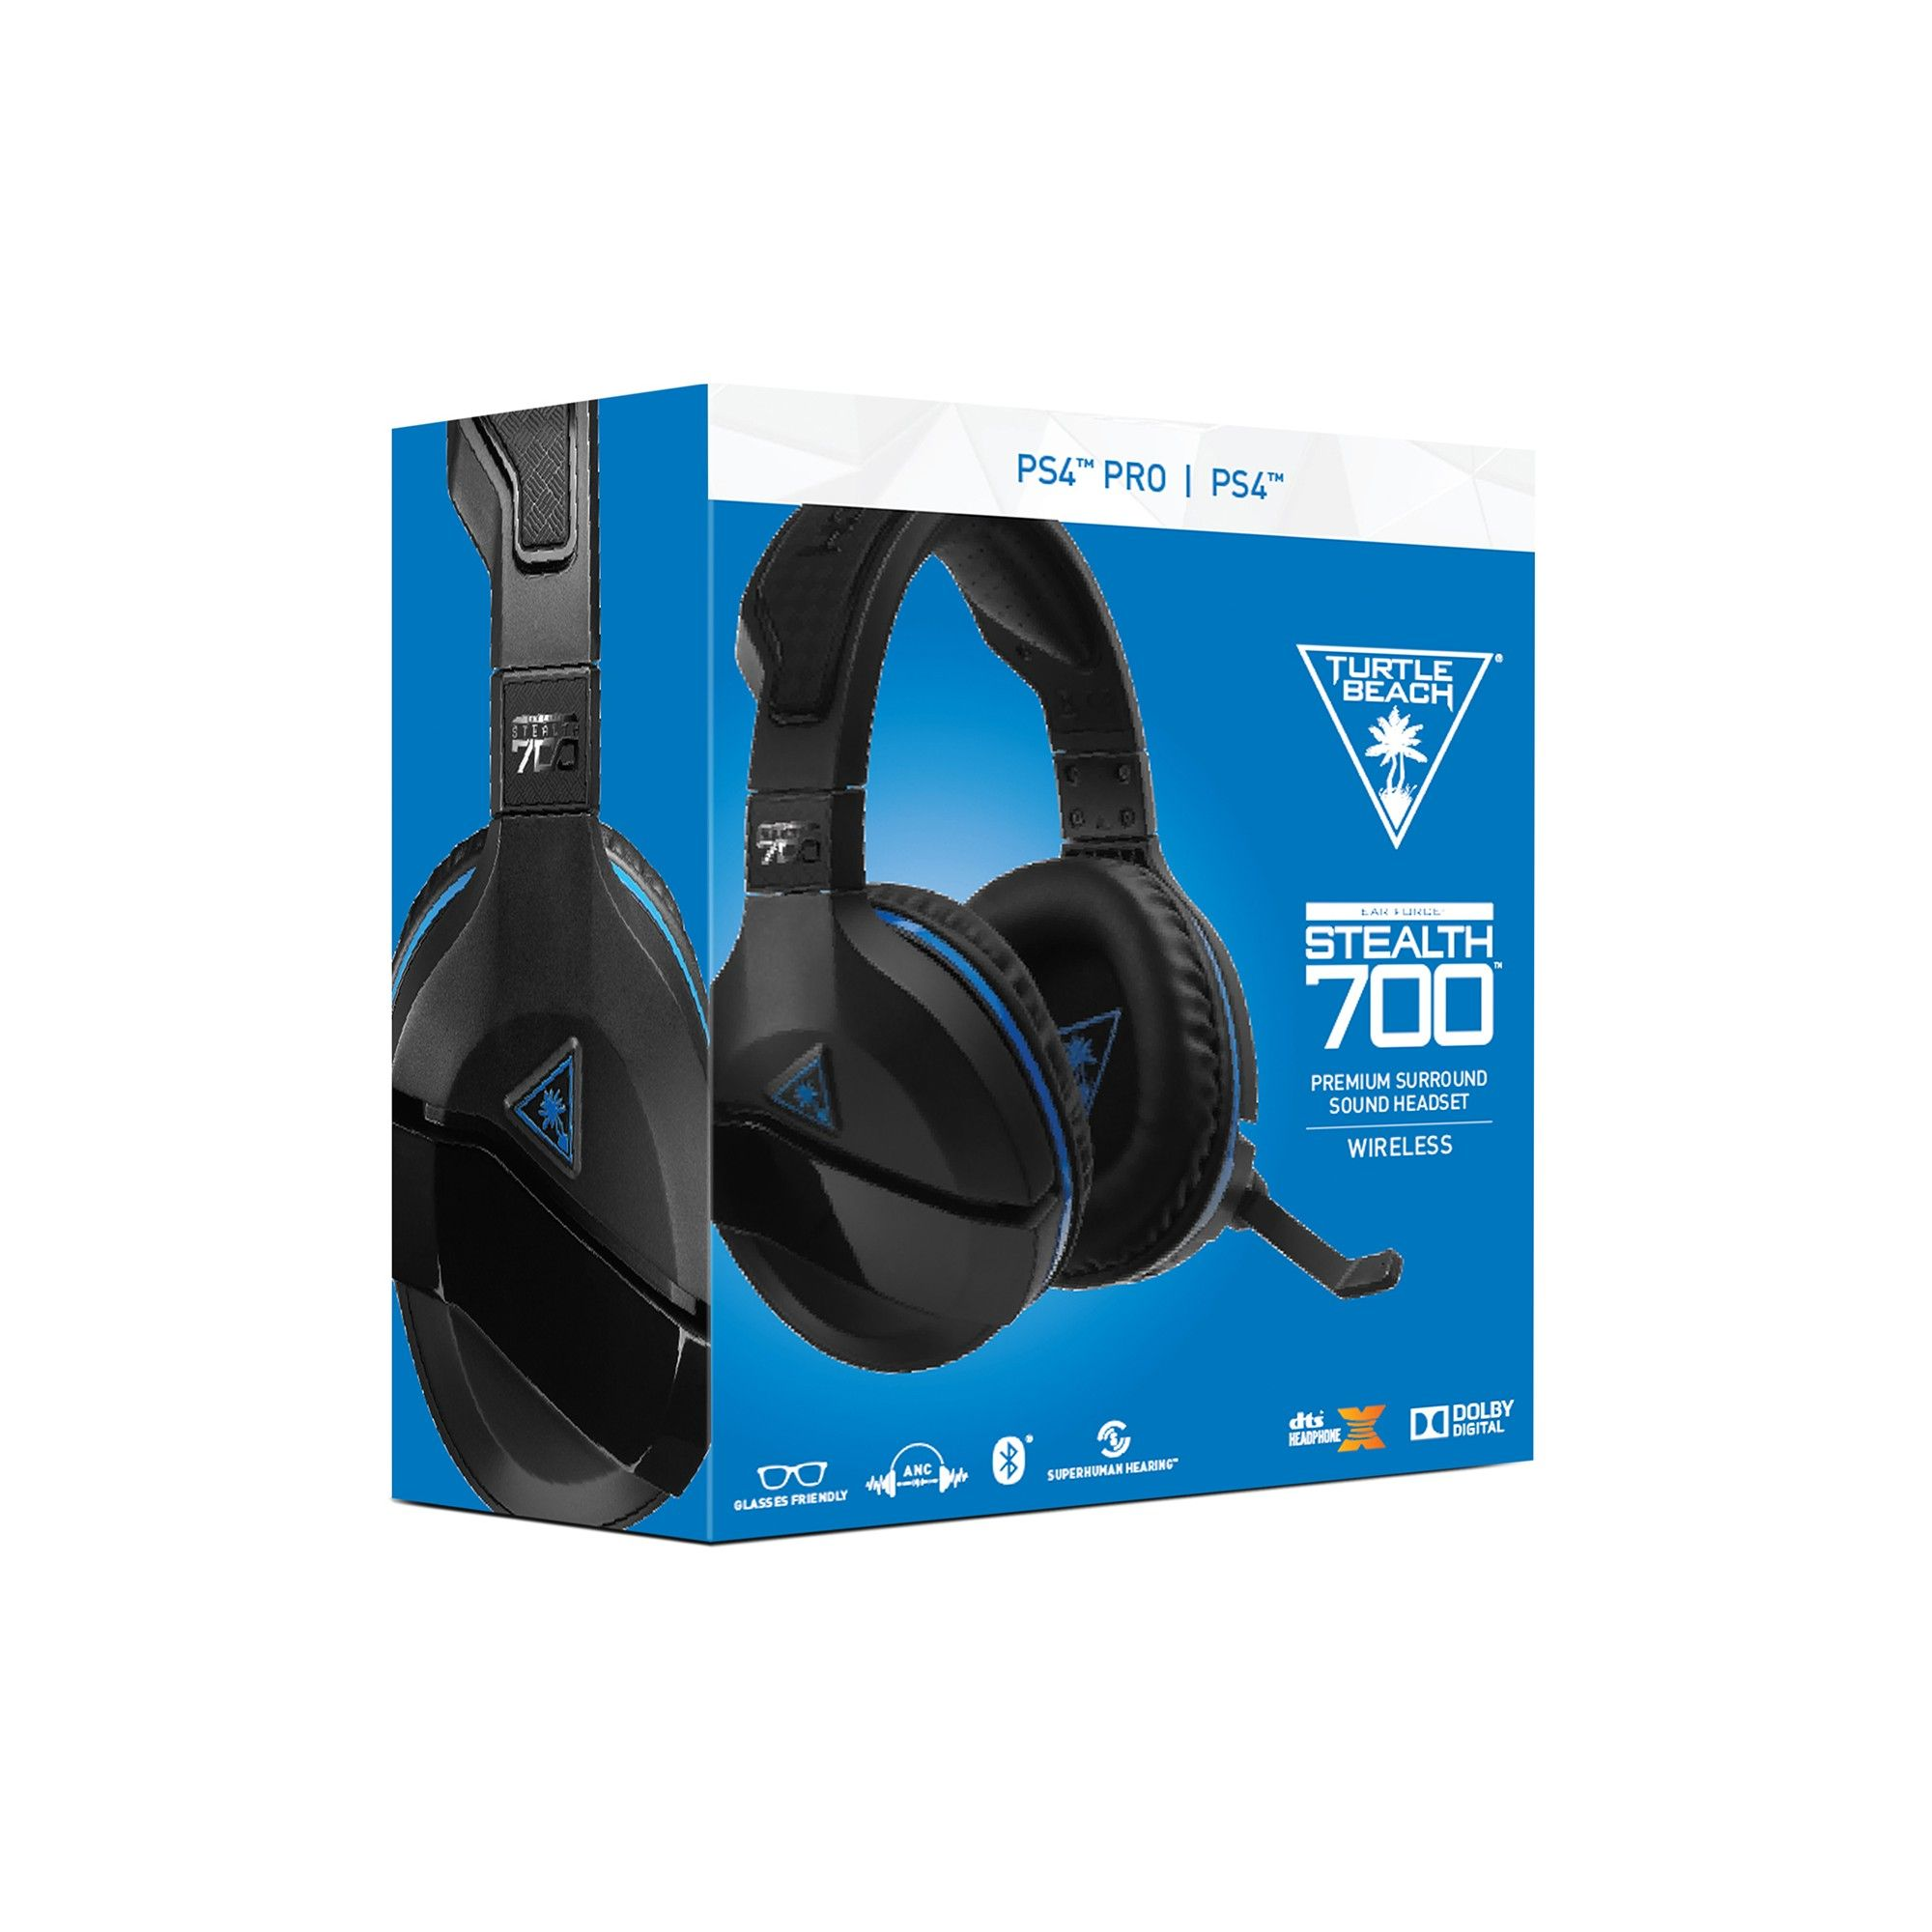 Turtle Beach Stealth 700 Premium Wireless Surround Sound Gaming Headset For Playstation4 Pro And Playstation4 Wireless Surround Sound Gaming Headset Headset